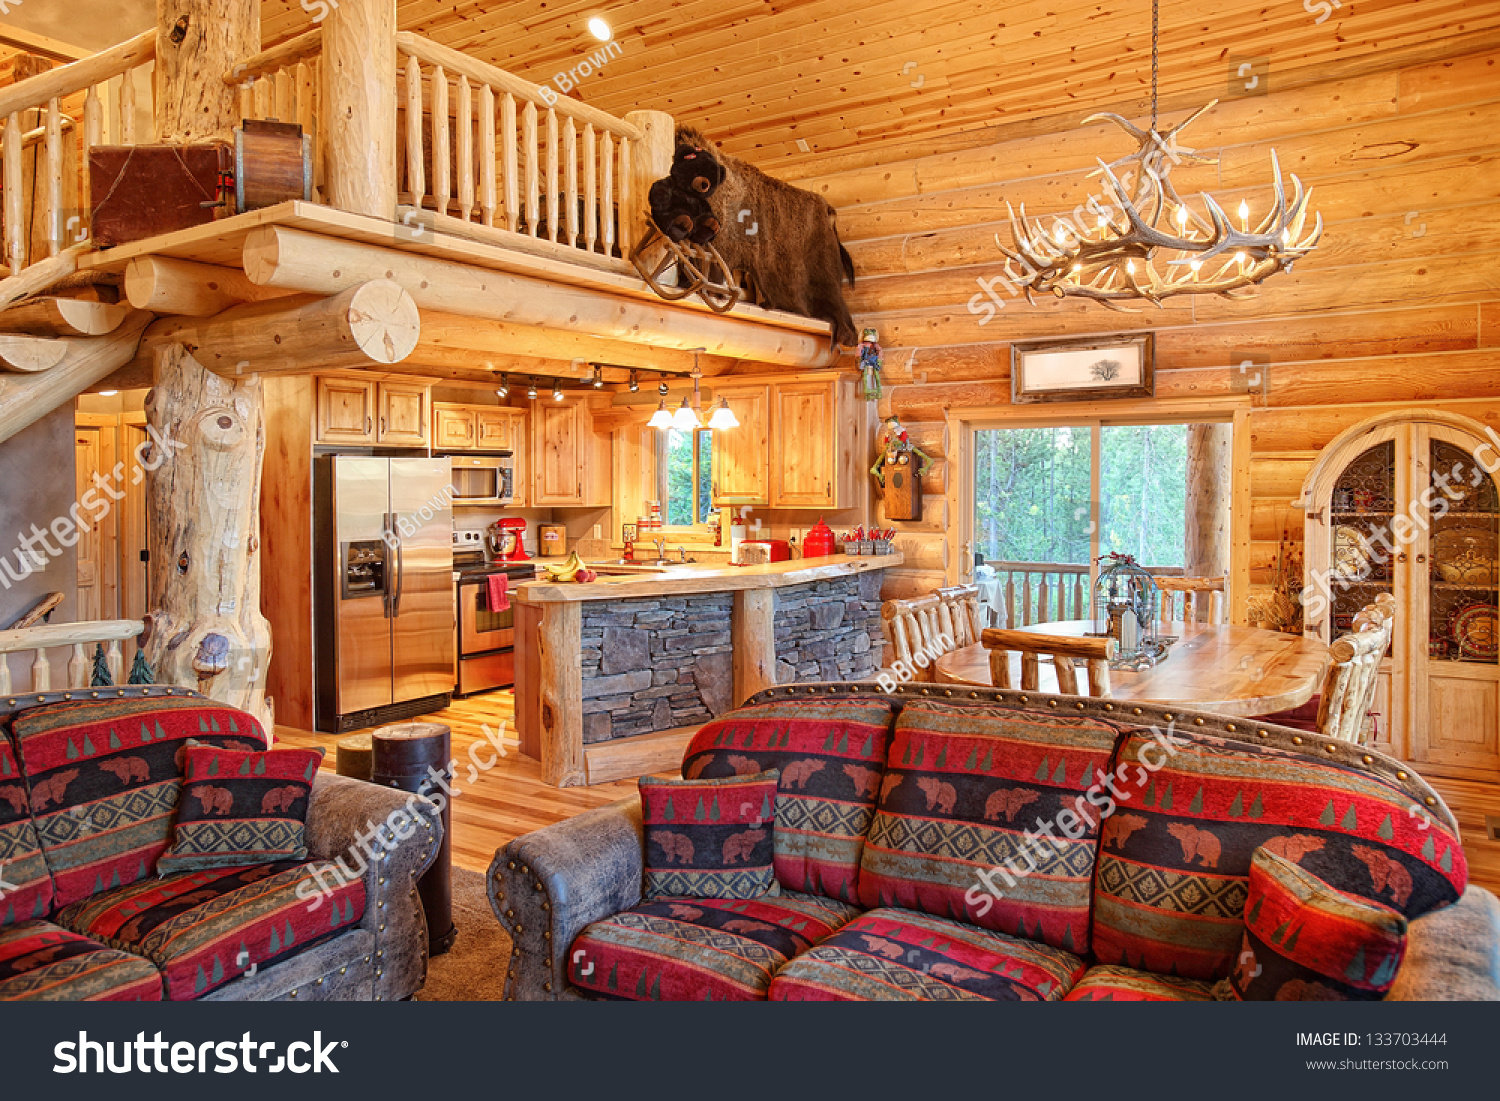 Interior modern log cabin stock photo 133703444 shutterstock for Log cabin interiors modern